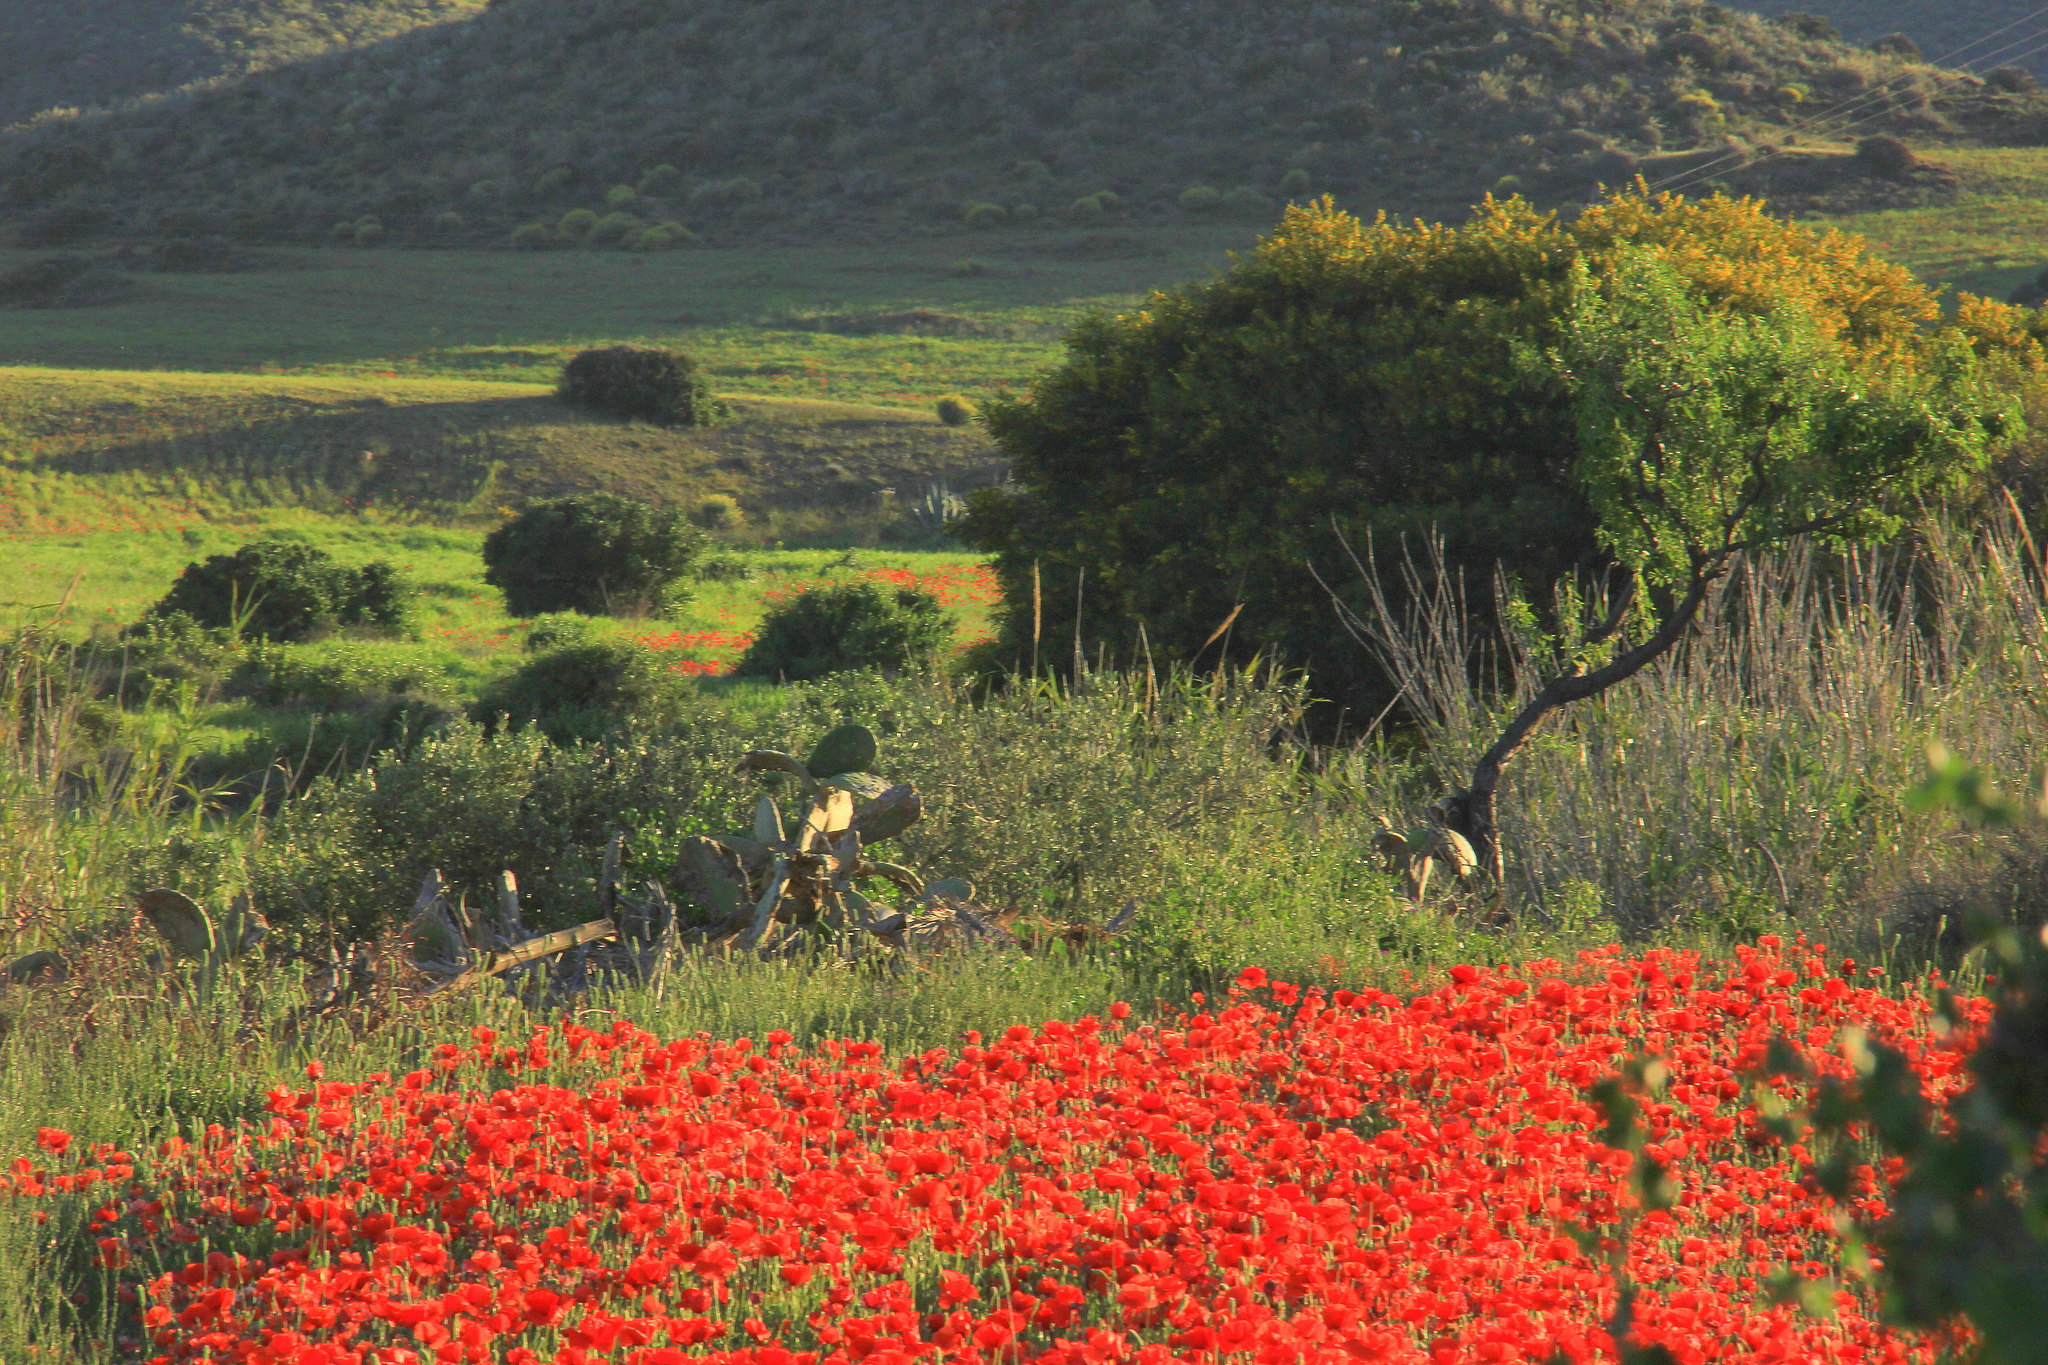 Poppies in spring in Spain